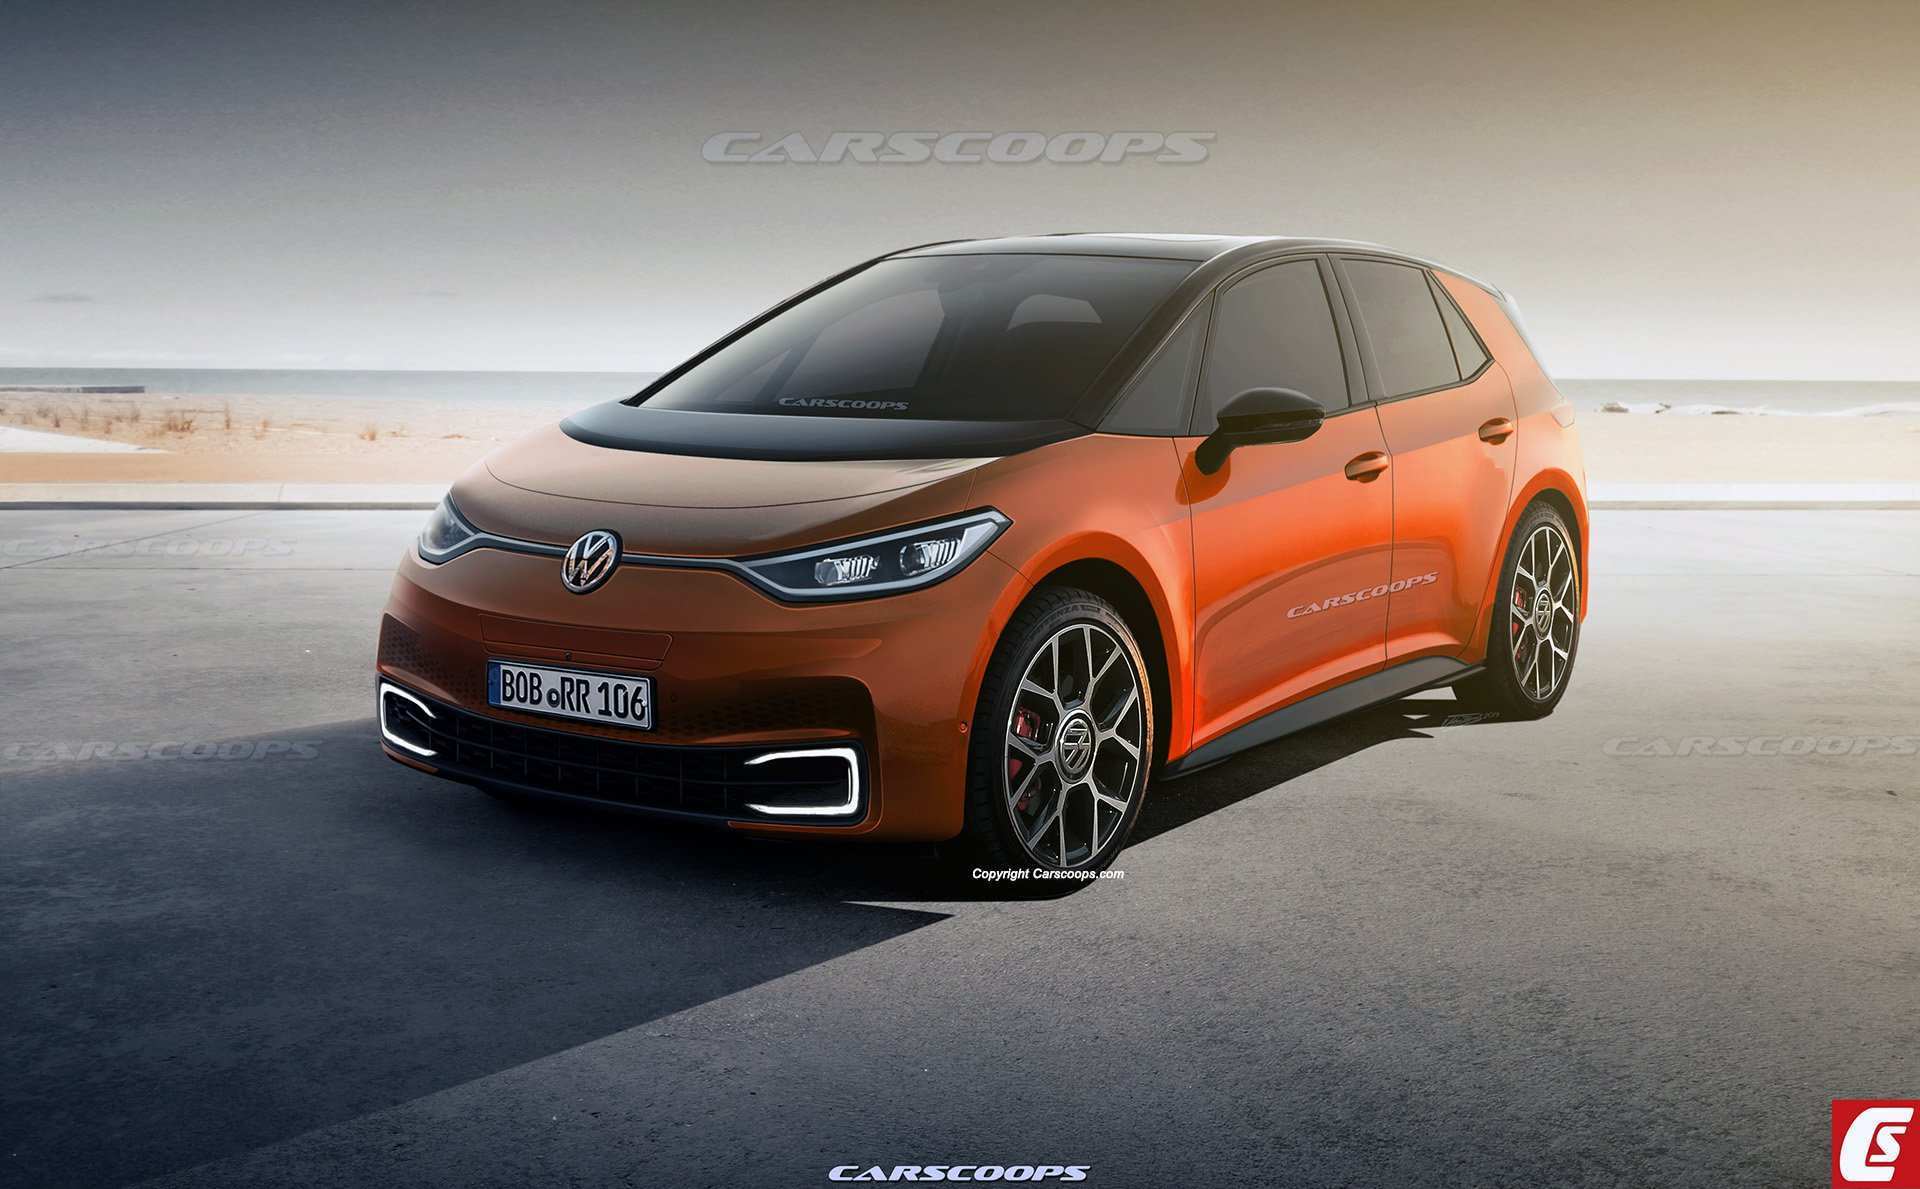 33 New Volkswagen Upcoming Cars 2020 Pricing by Volkswagen Upcoming Cars 2020